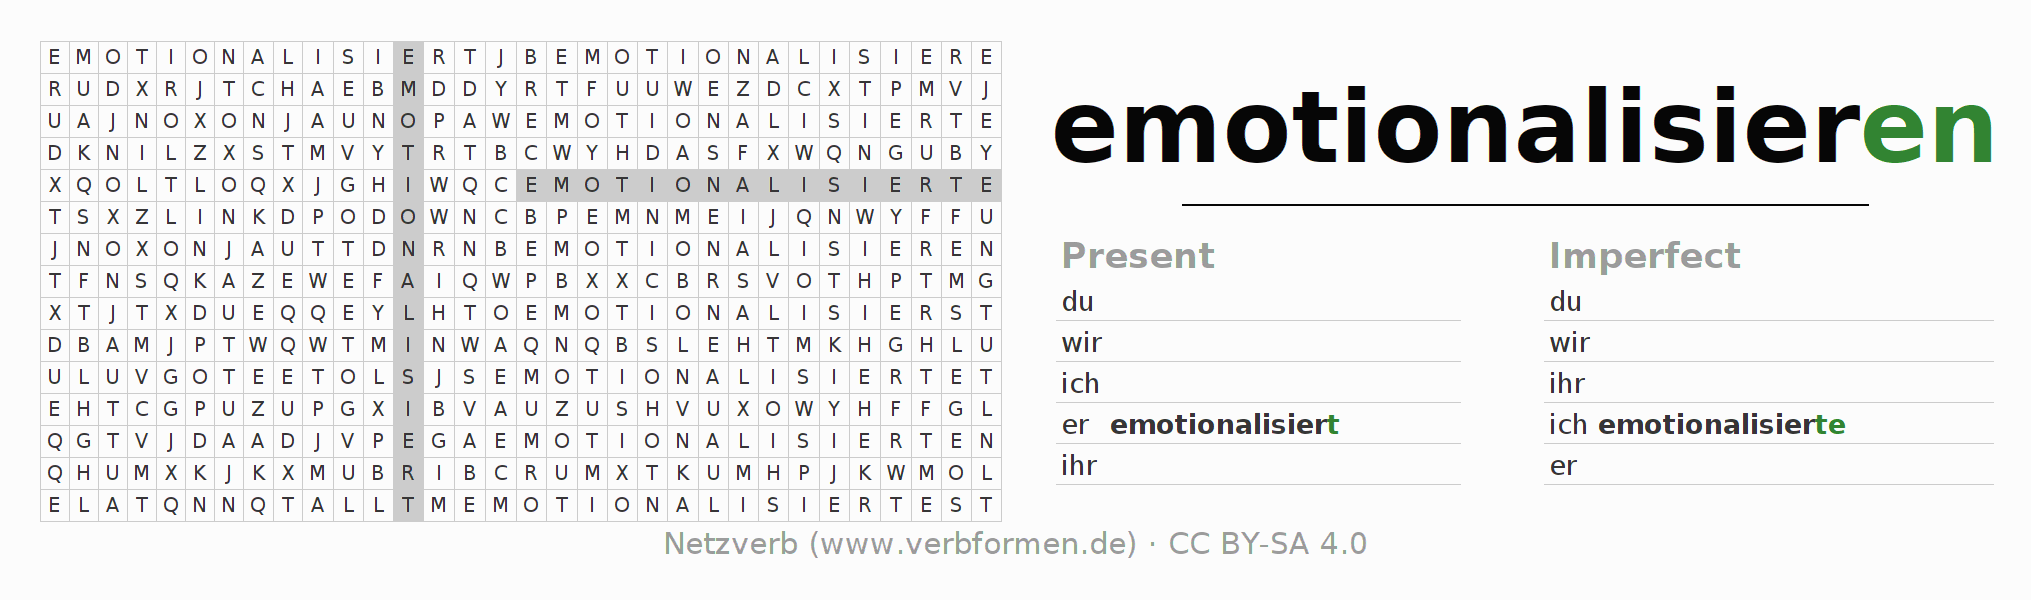 Word search puzzle for the conjugation of the verb emotionalisieren